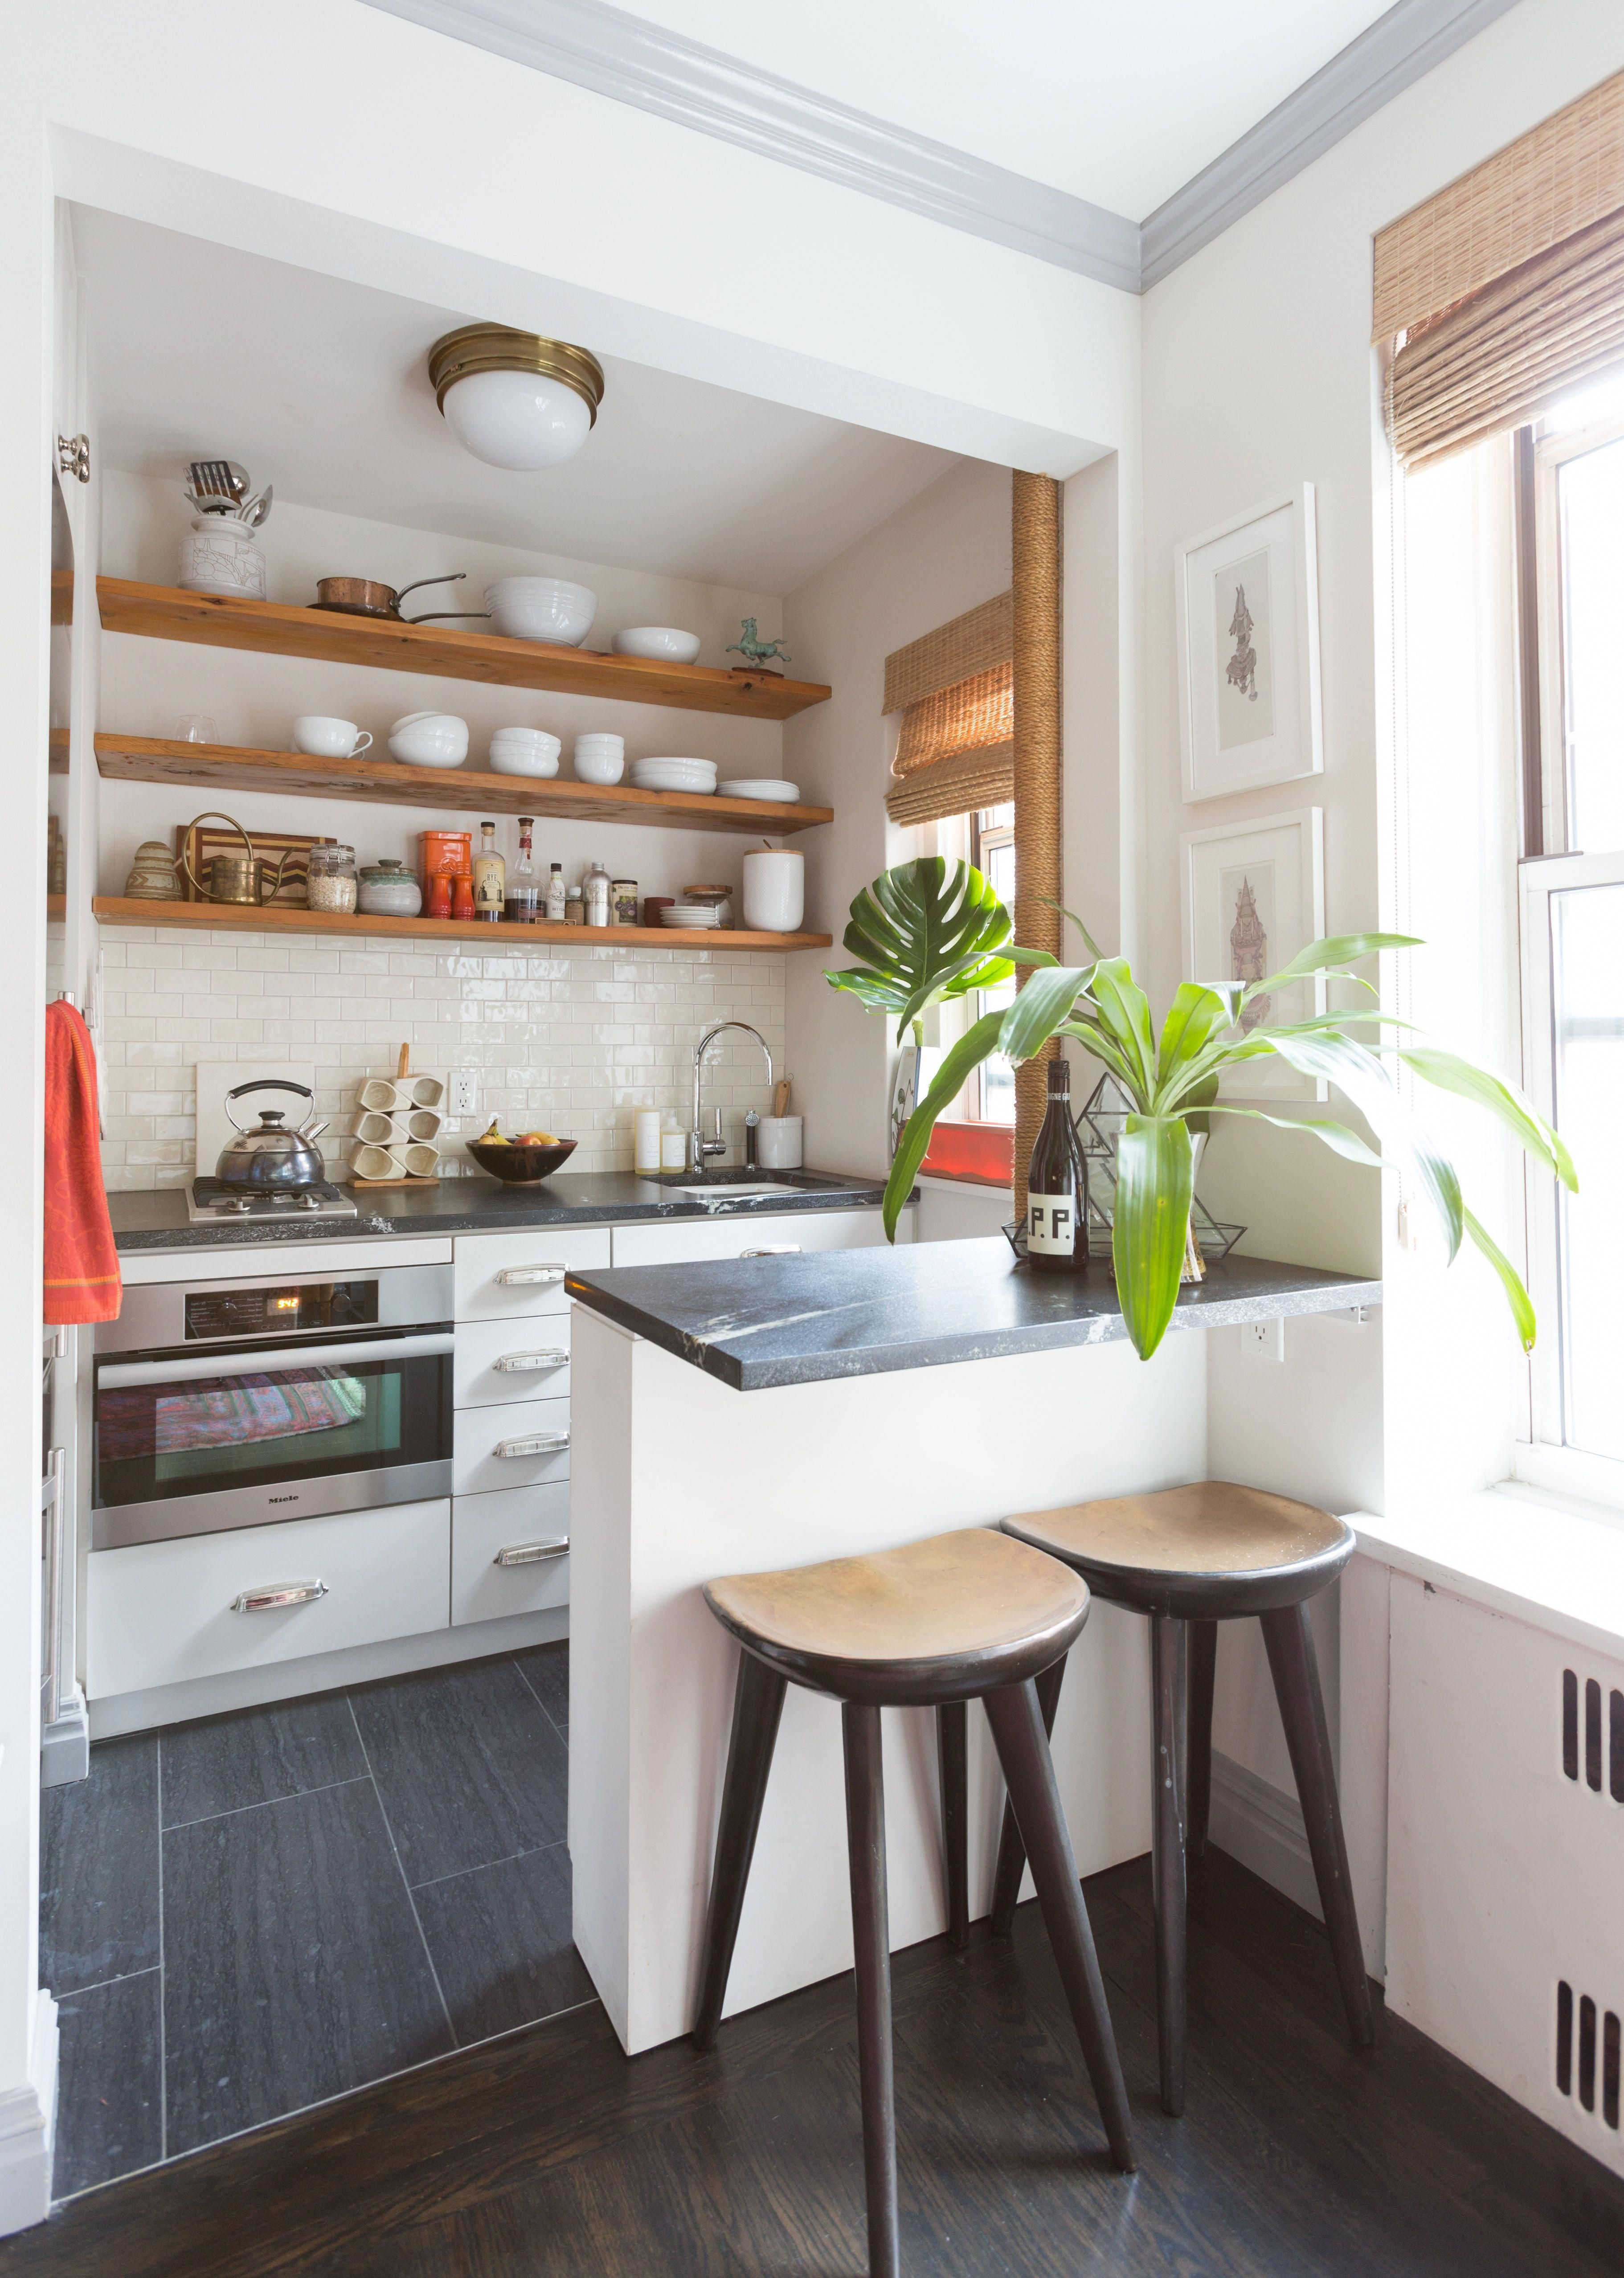 House Tour An Artist S 450 Square Foot Nyc Studio Apartment Therapy Bestkitcheninteri Modern Kitchen Interiors Kitchen Design Small Interior Design Kitchen